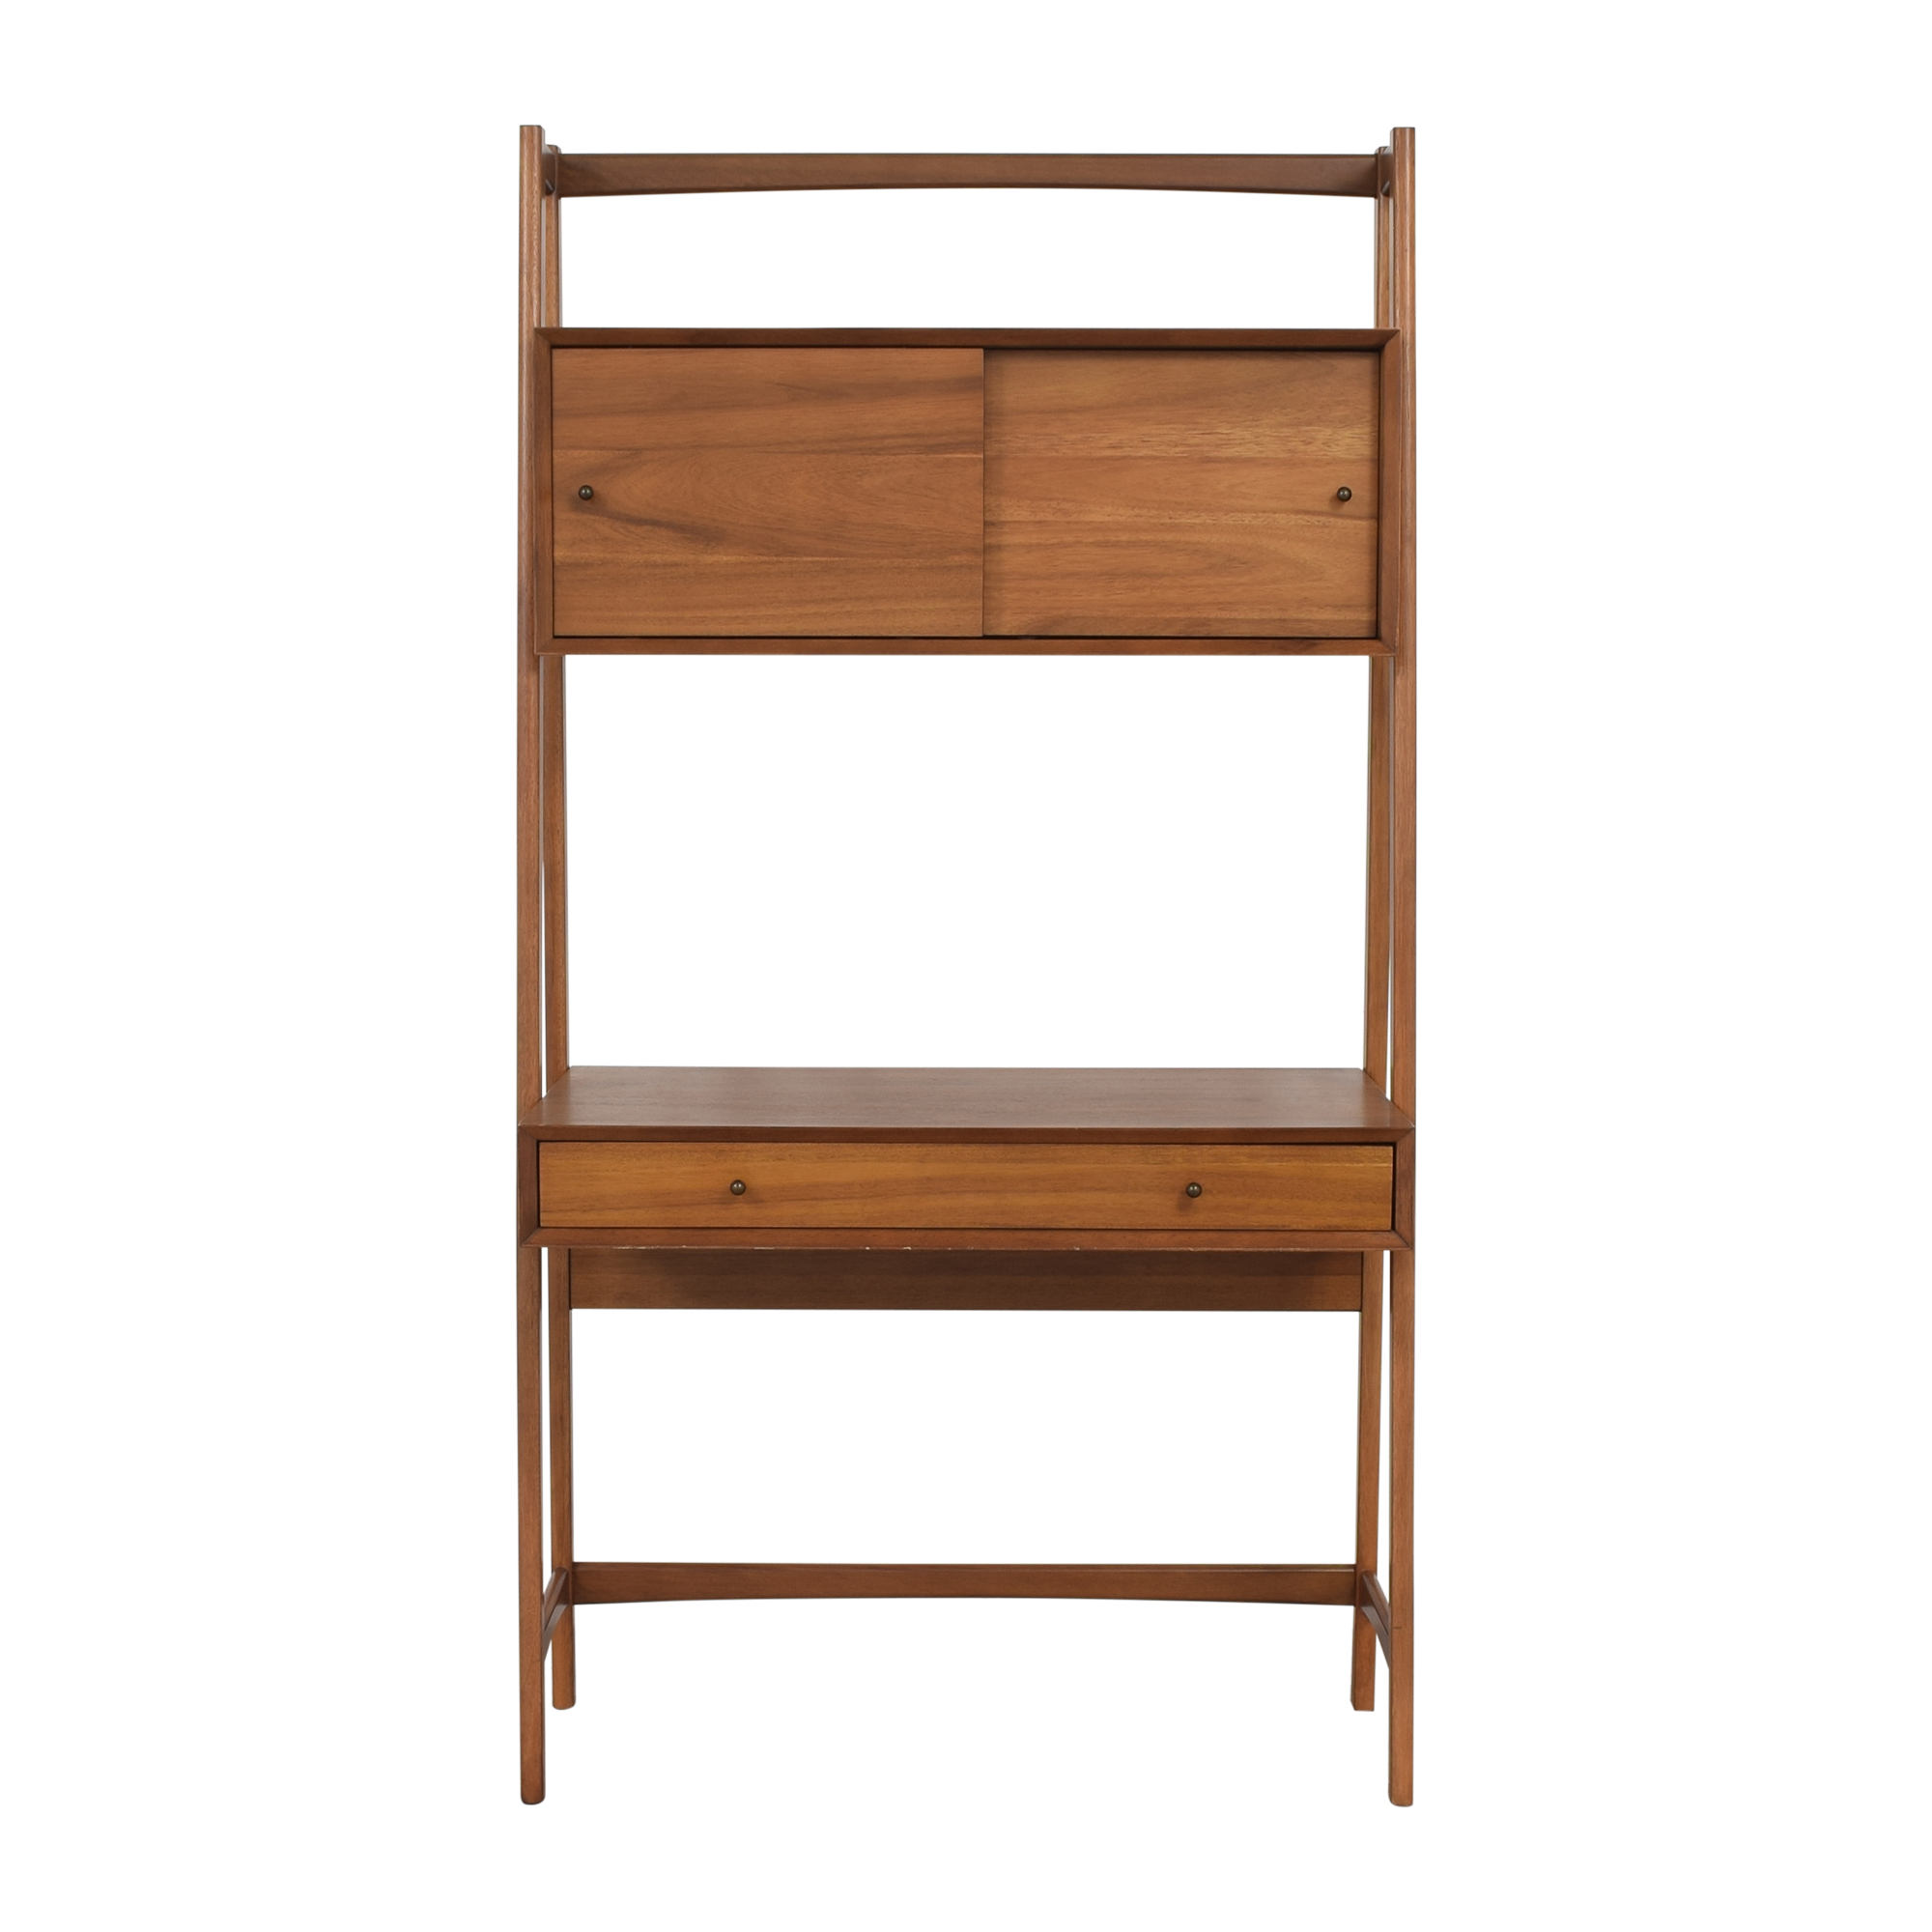 West Elm West Elm Mid-Century Wall Desk on sale